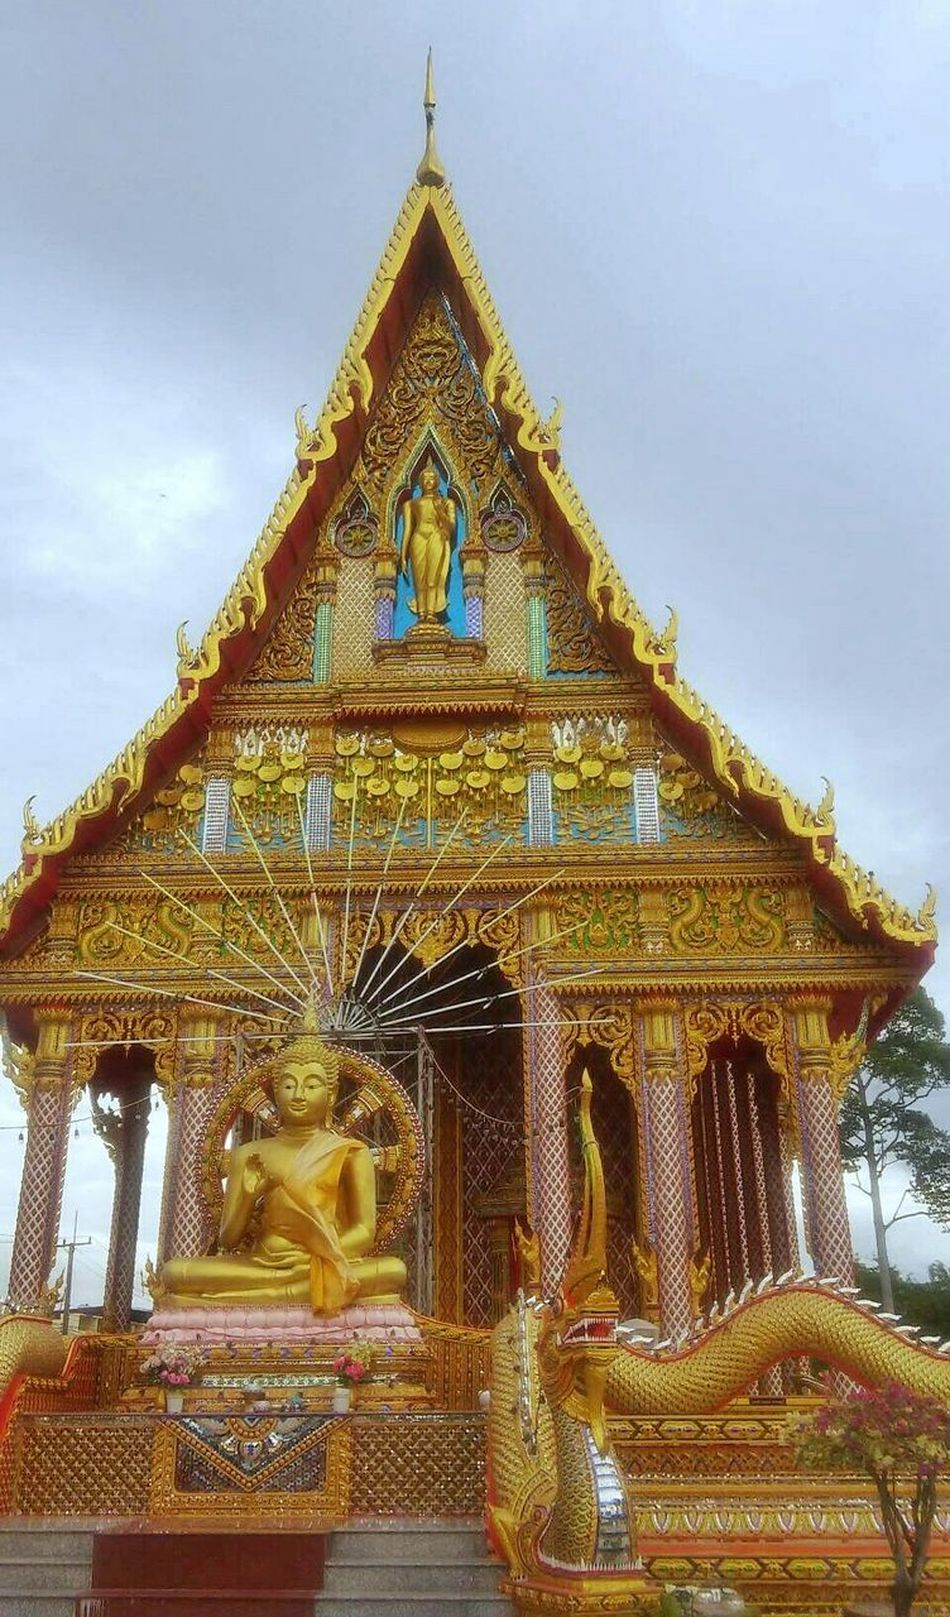 Temple in Thailand Gold Statue Temple Temple In Thailand Religion Gold Colored Architecture Spirituality Spiritual Place Sculpture Bangkok Bangkok Thailand Thailand Outdoors King Buddhism Pray Love Peacefull Buddha Buddha Statue Golden Temple Monks Religious  Sights